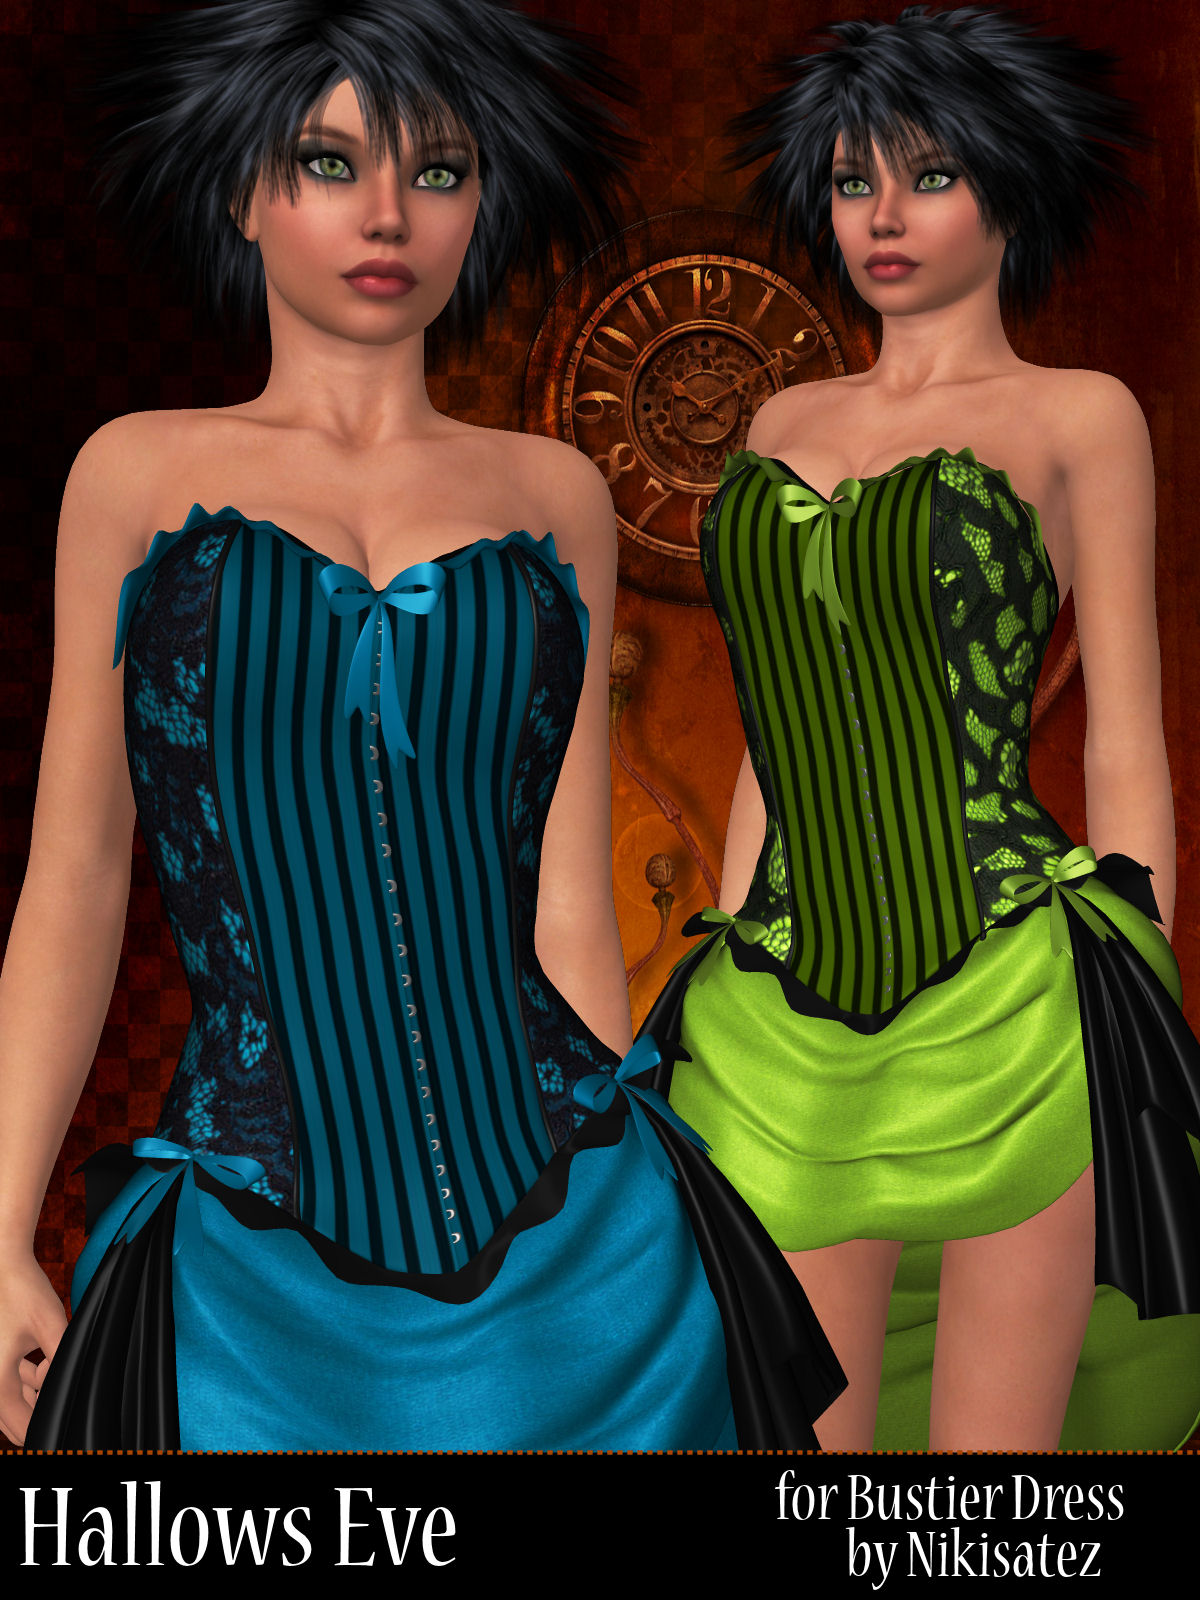 Hallows Eve for Bustier Dress